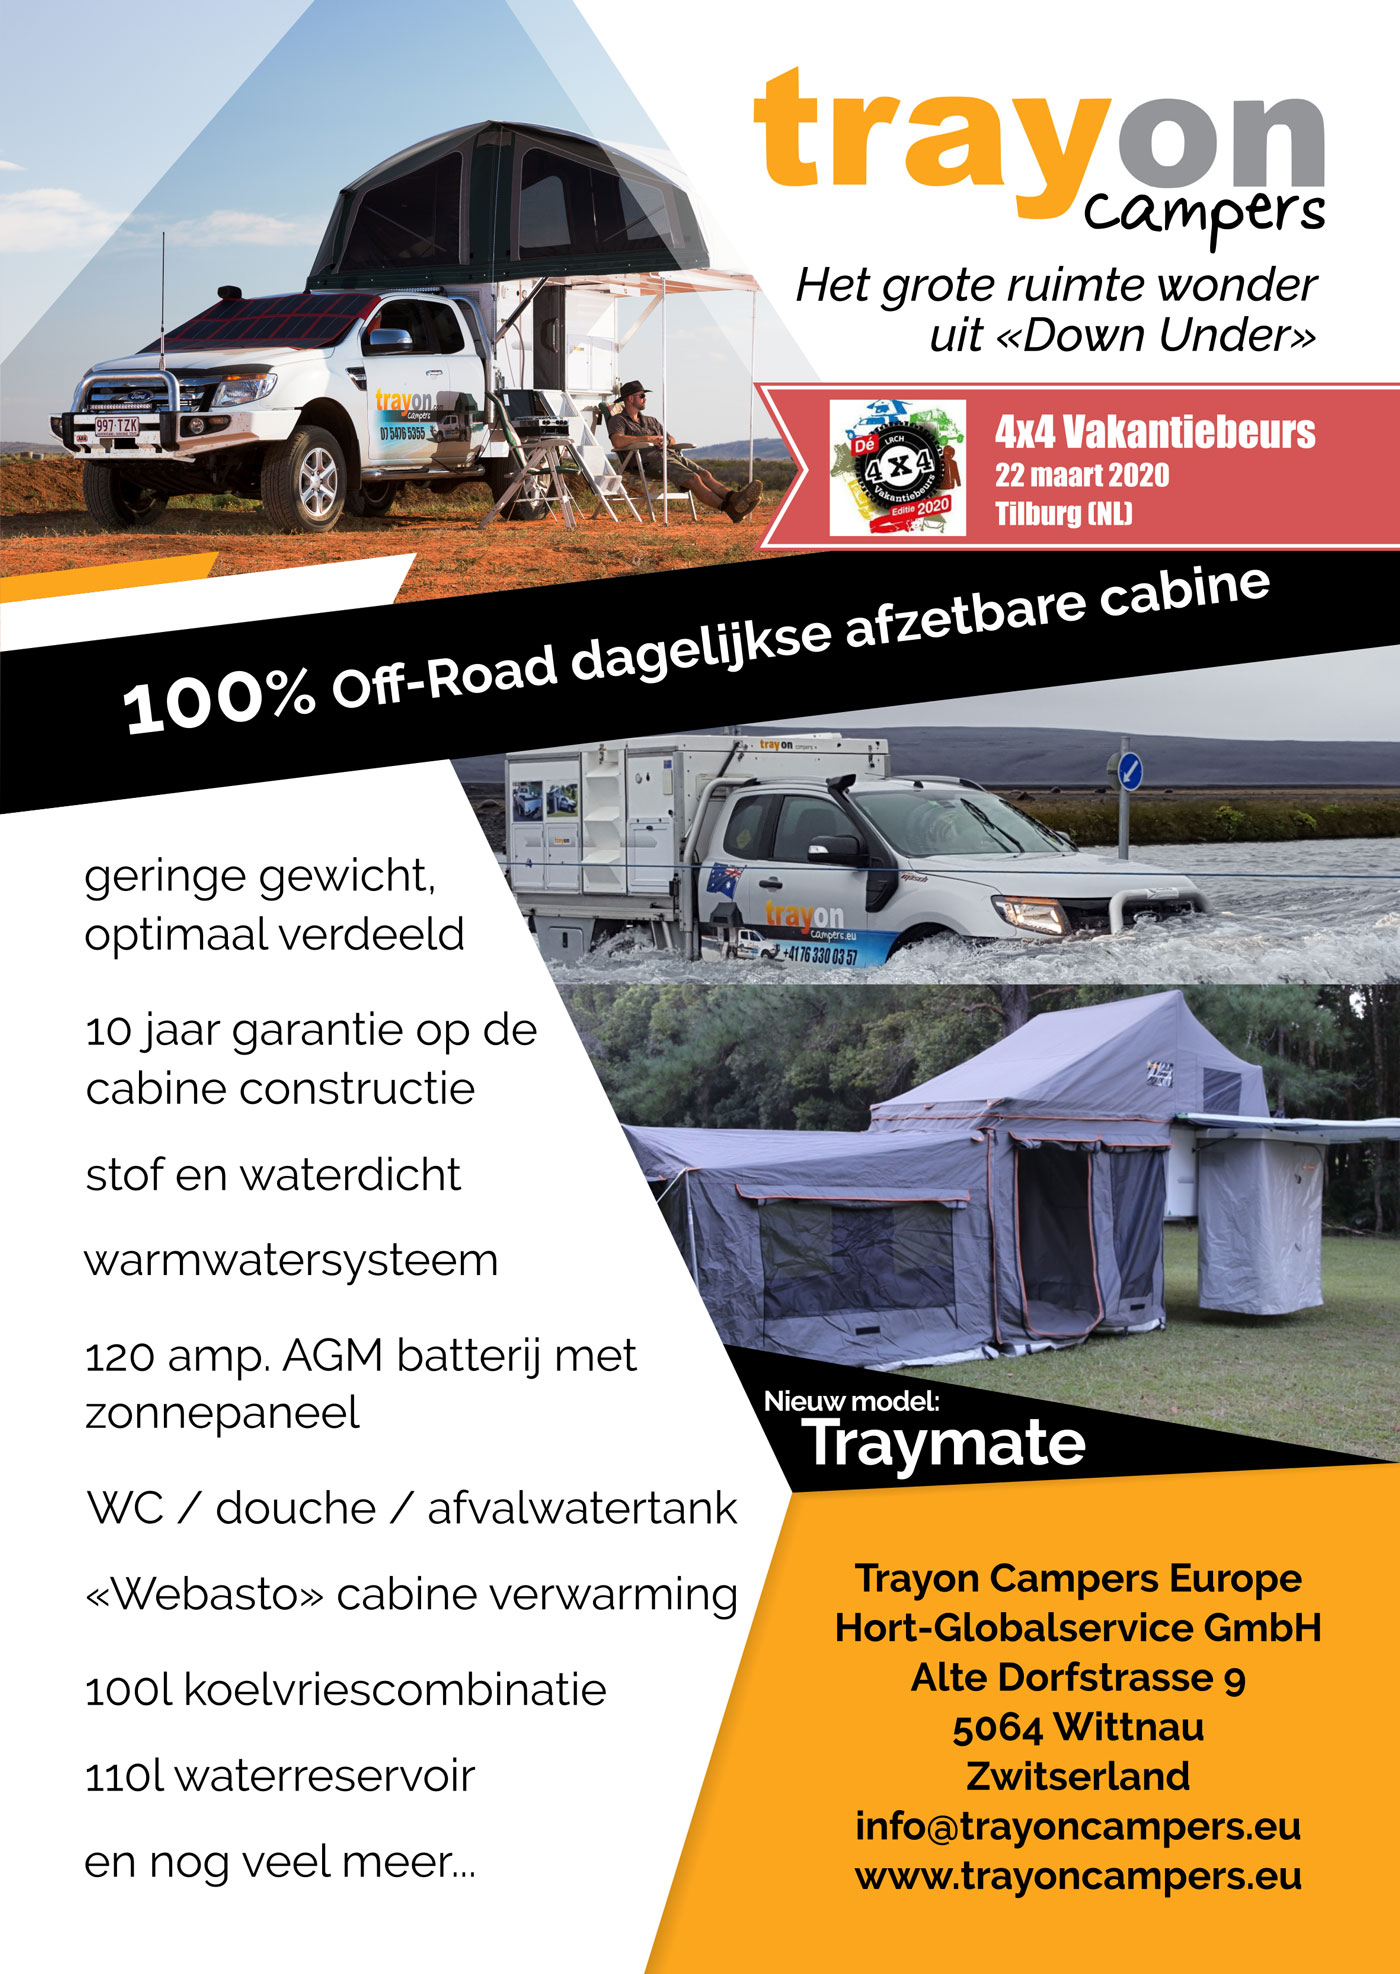 Trayon Campers